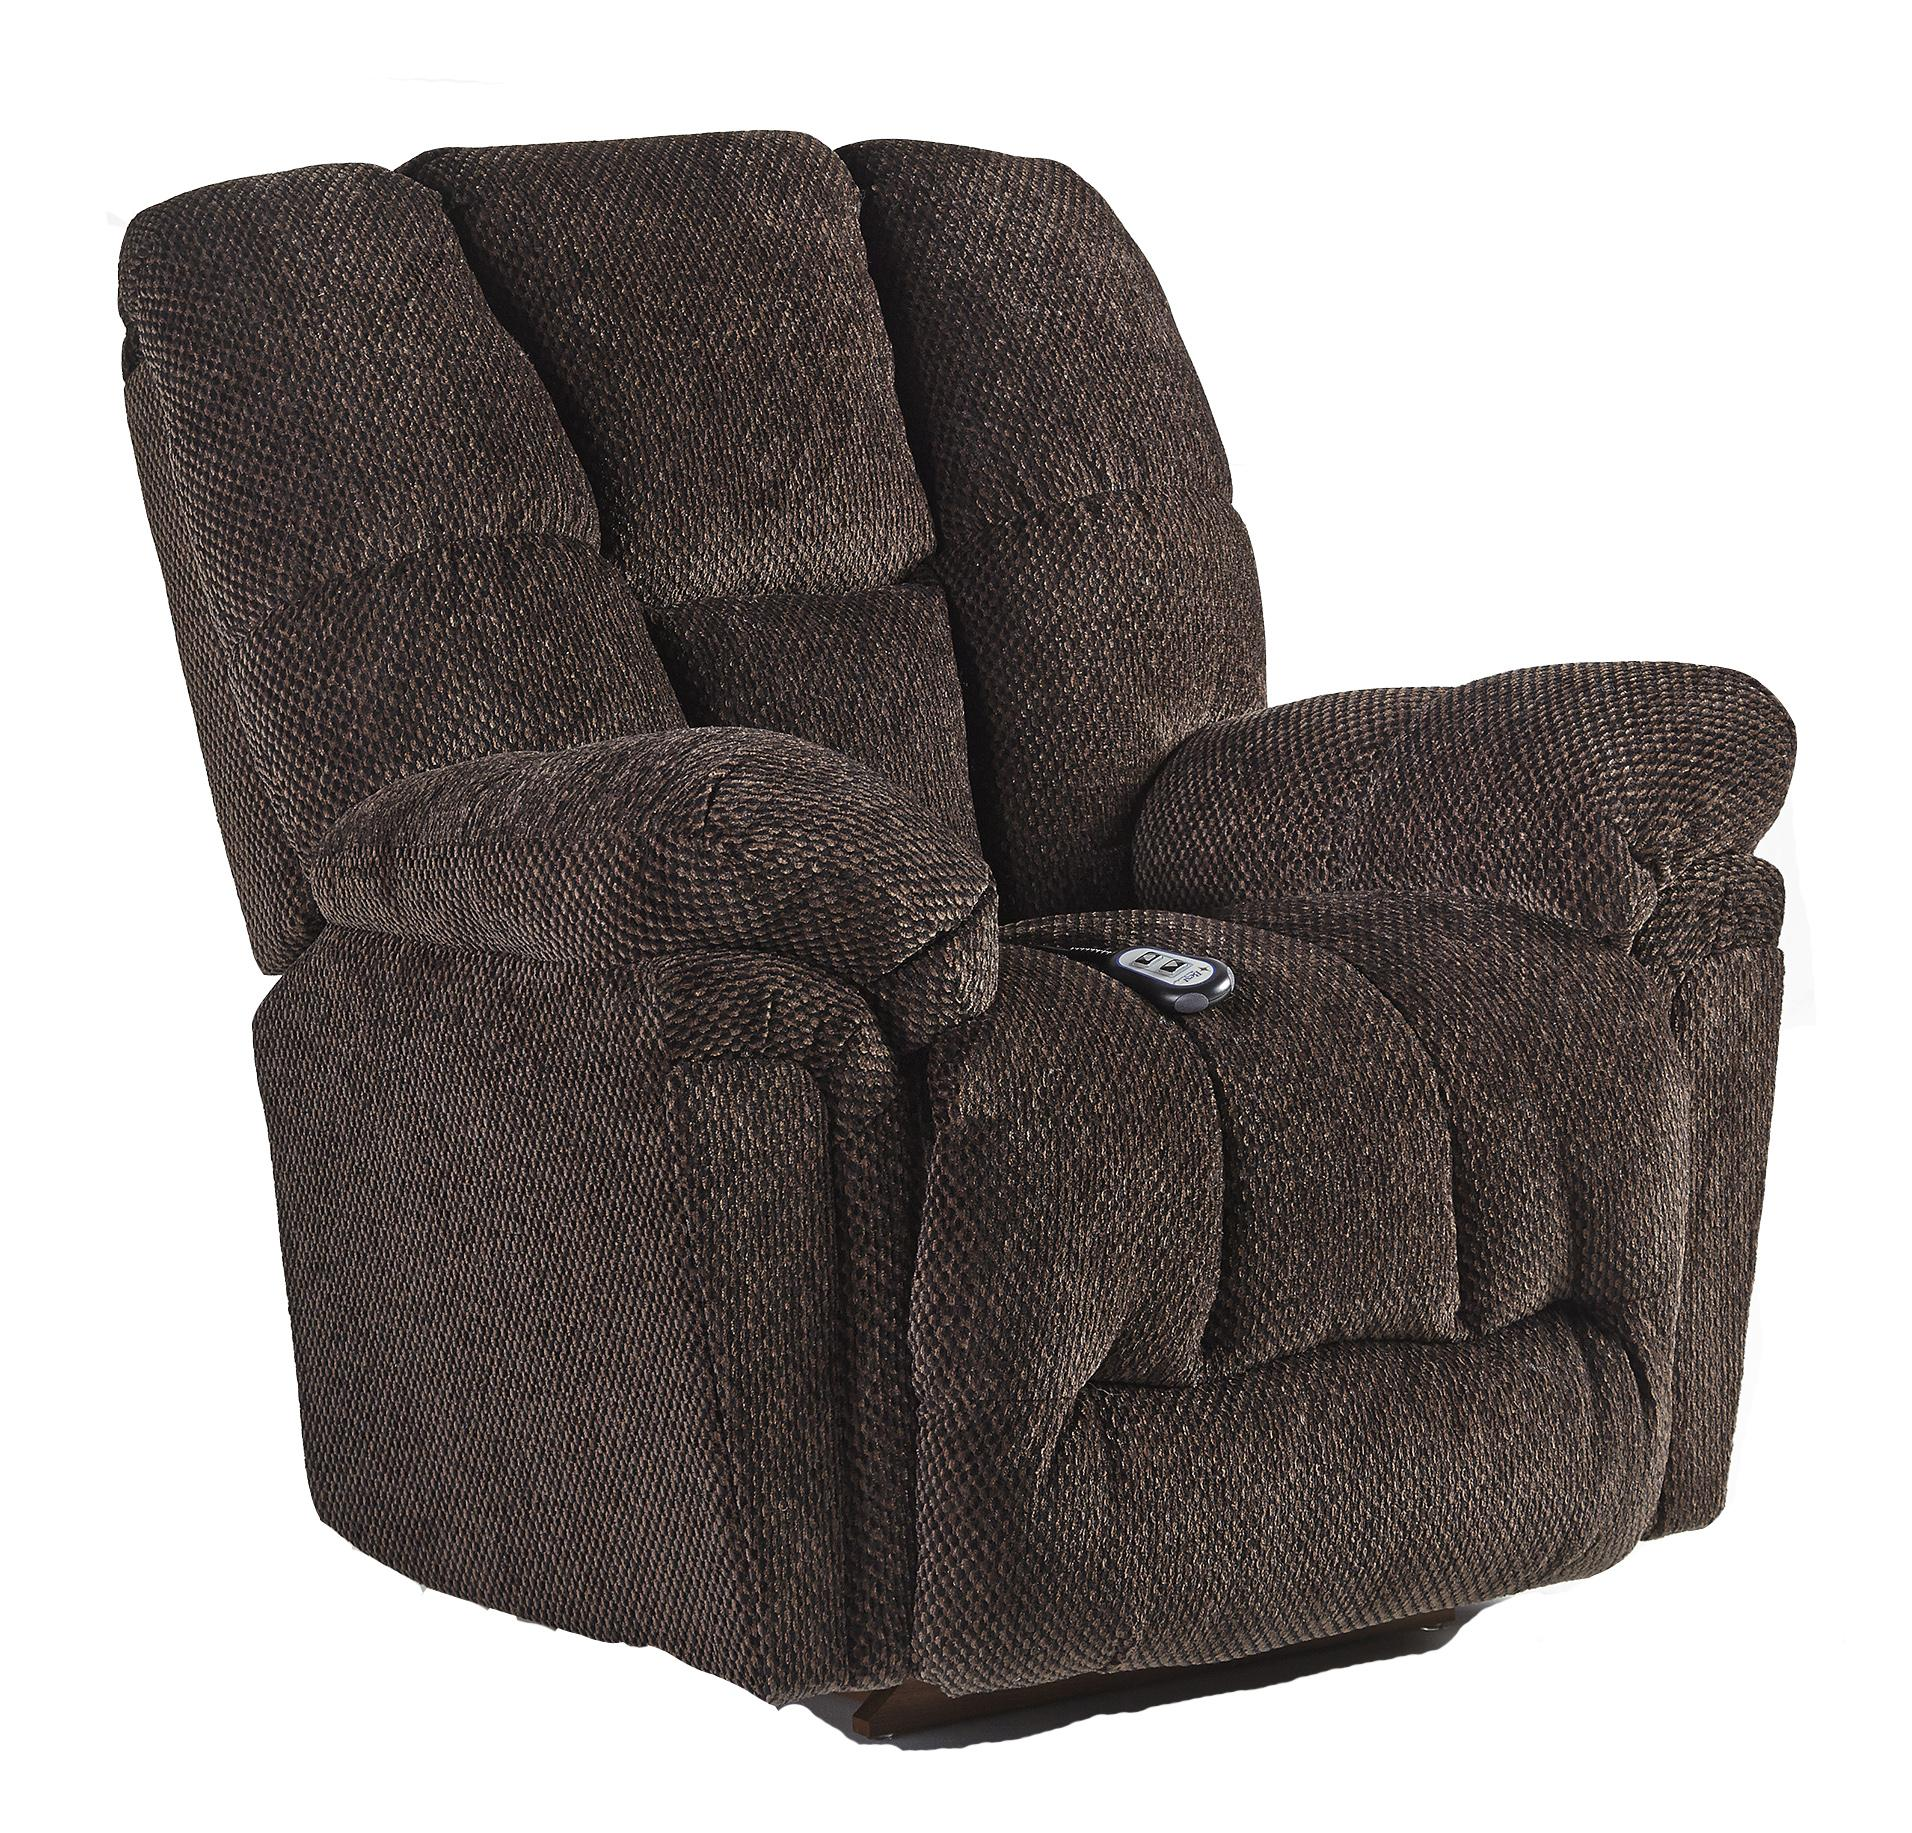 Best Home Furnishings Lucas Power Rocker Recliner - Item Number: 6MP57